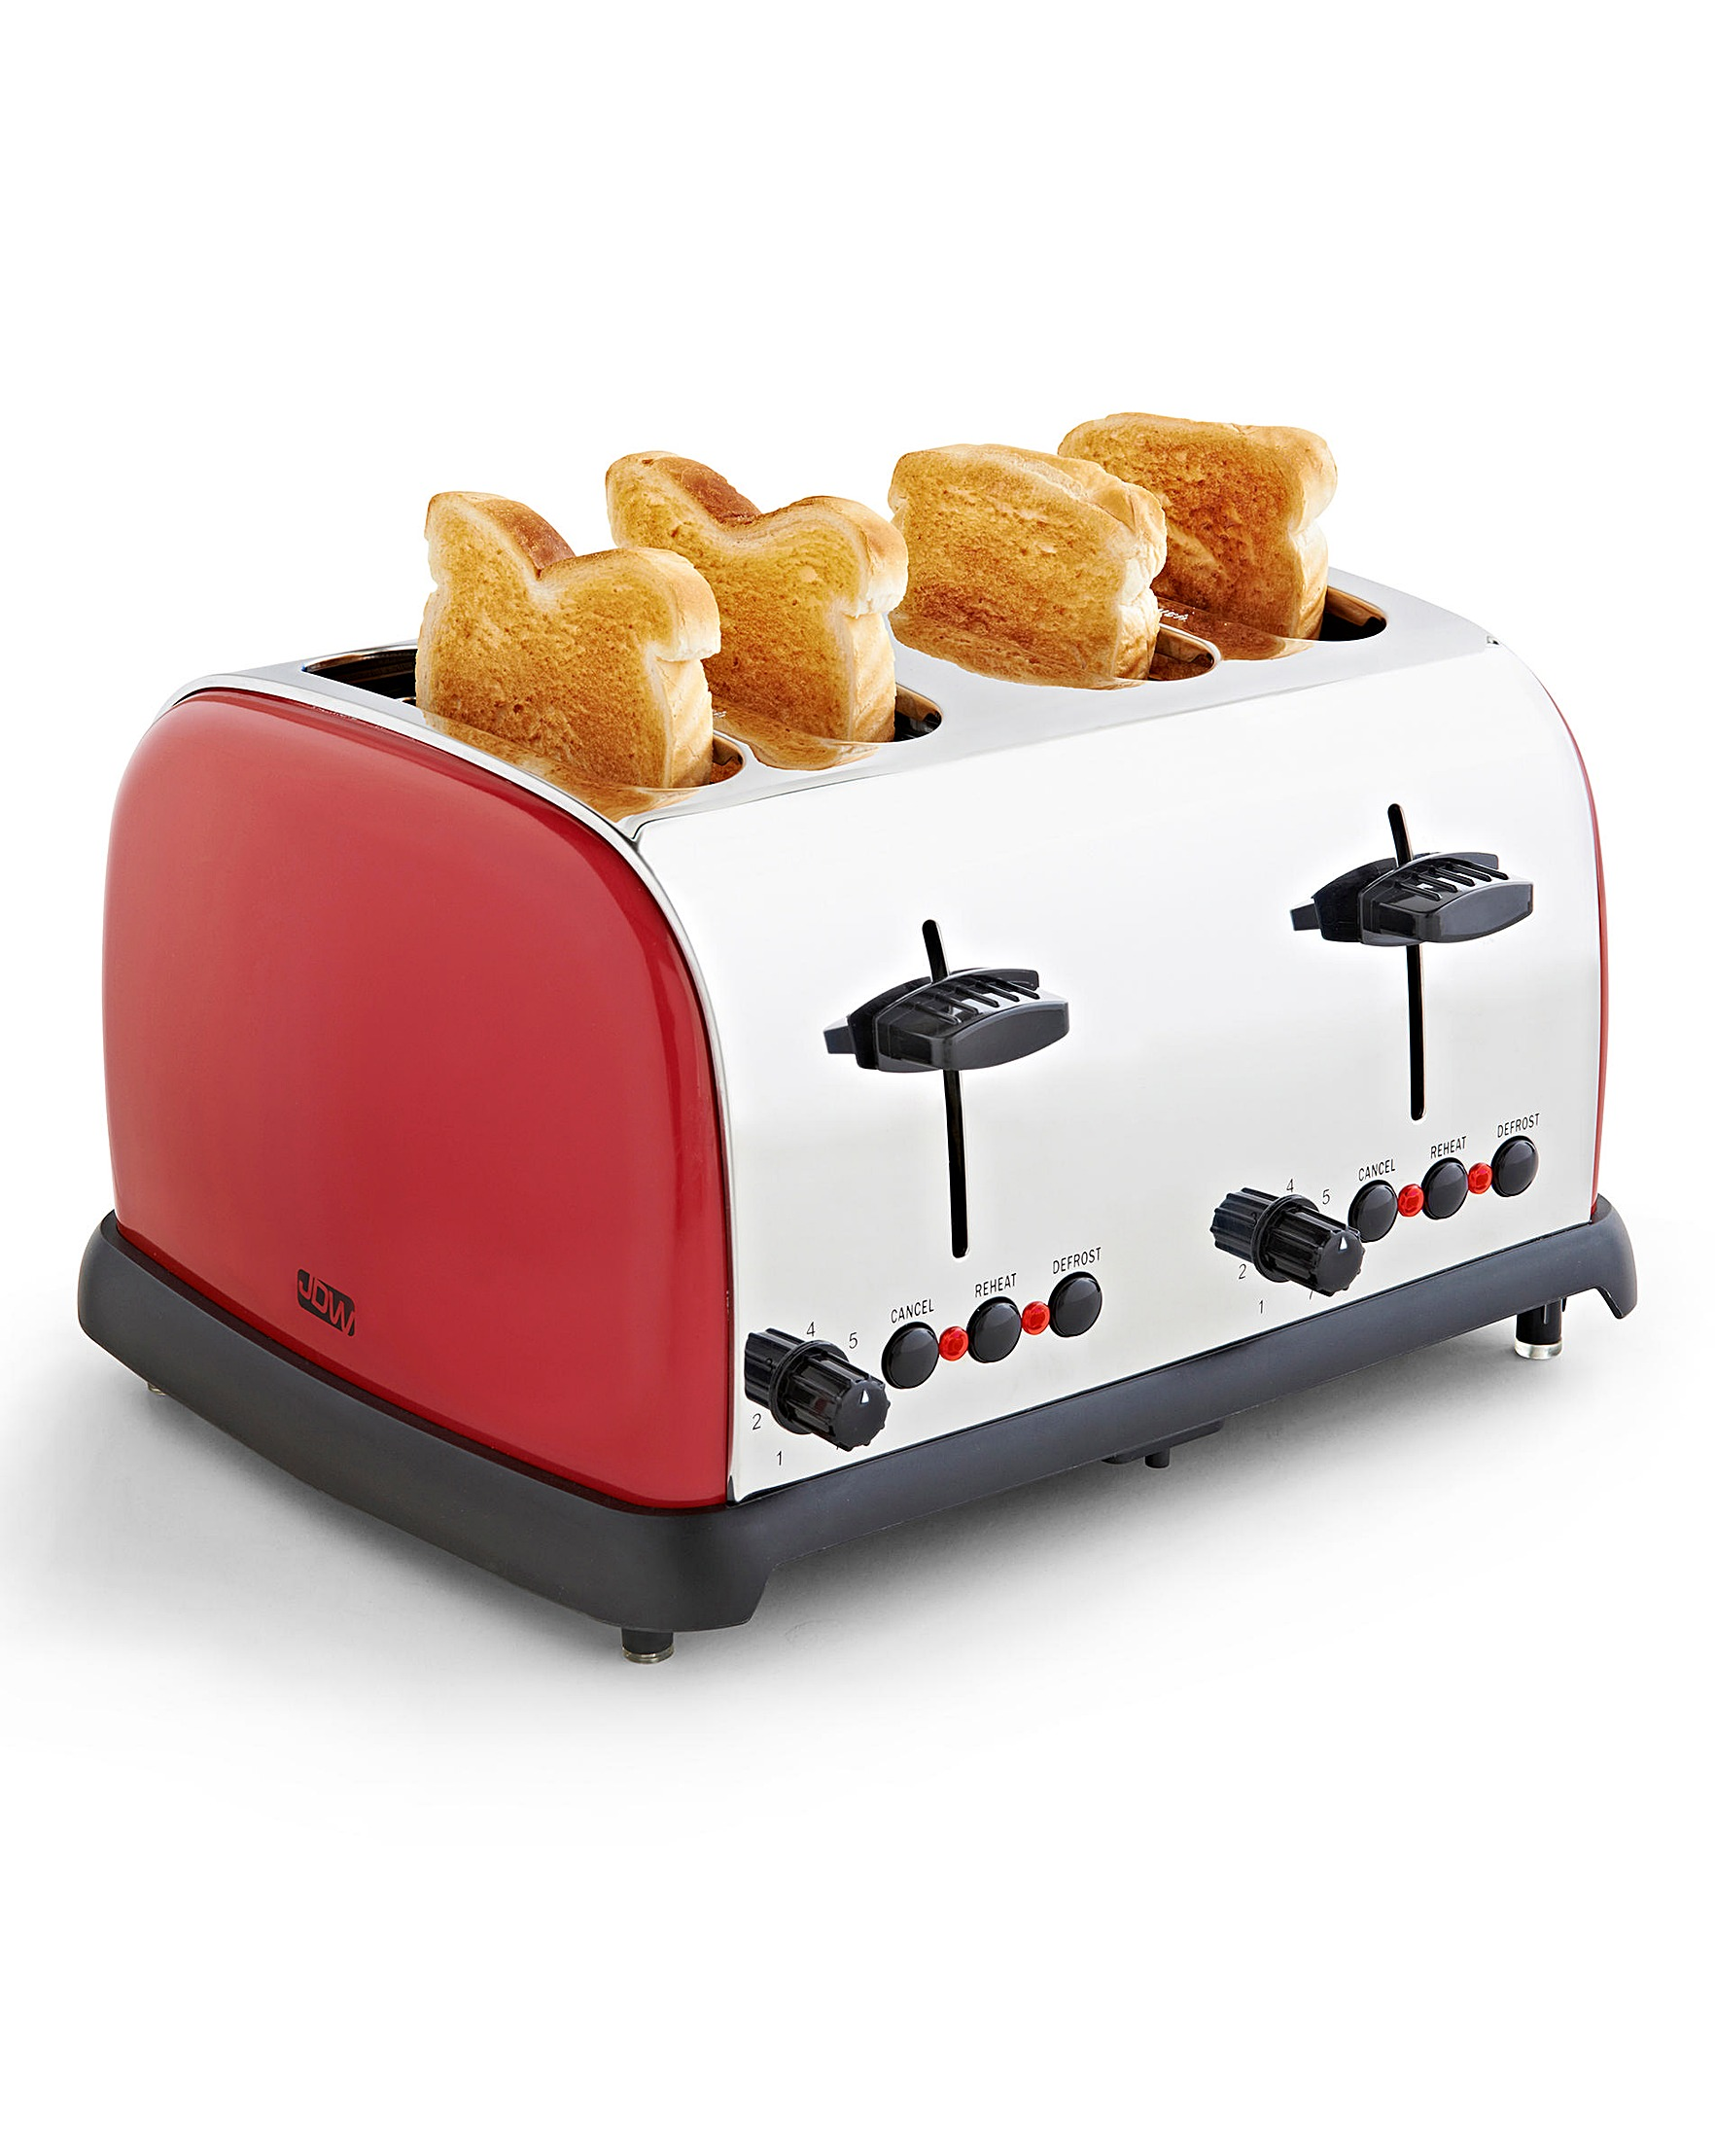 rapid toaster steel com walmart decker toast stainless ip fast black slice